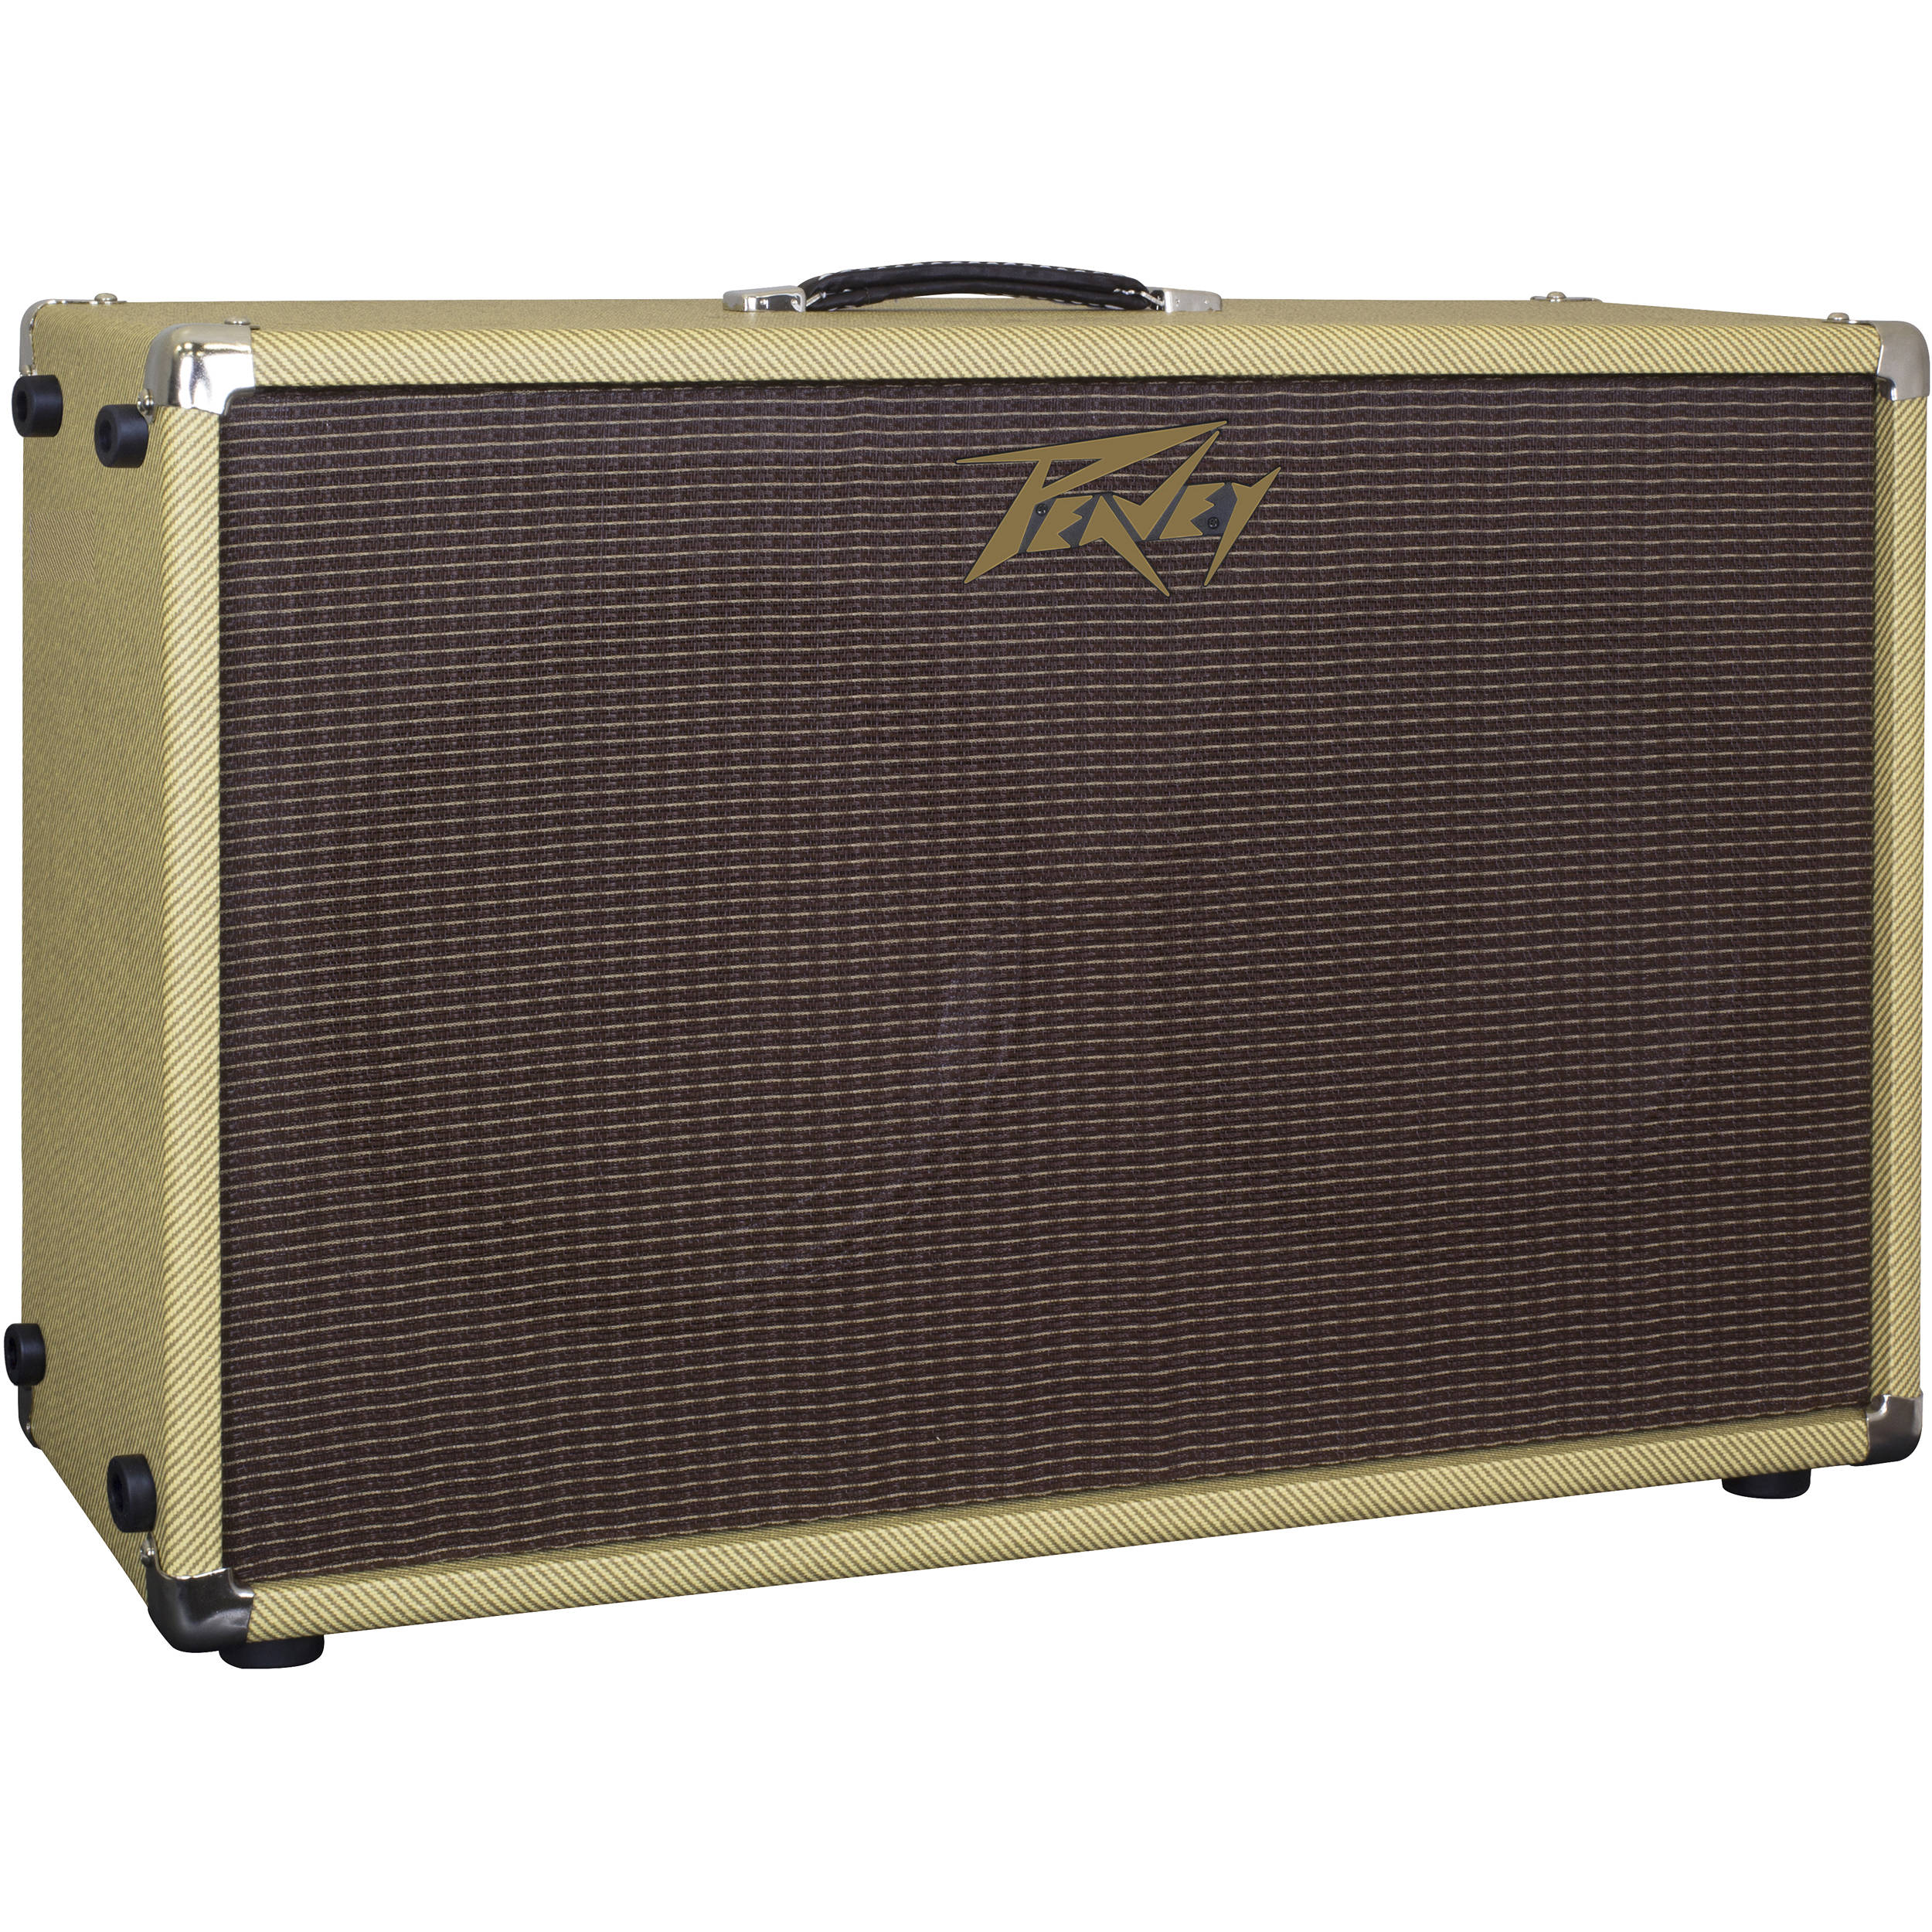 peavey 212 c electric guitar celestion 12 speakers cab. Black Bedroom Furniture Sets. Home Design Ideas